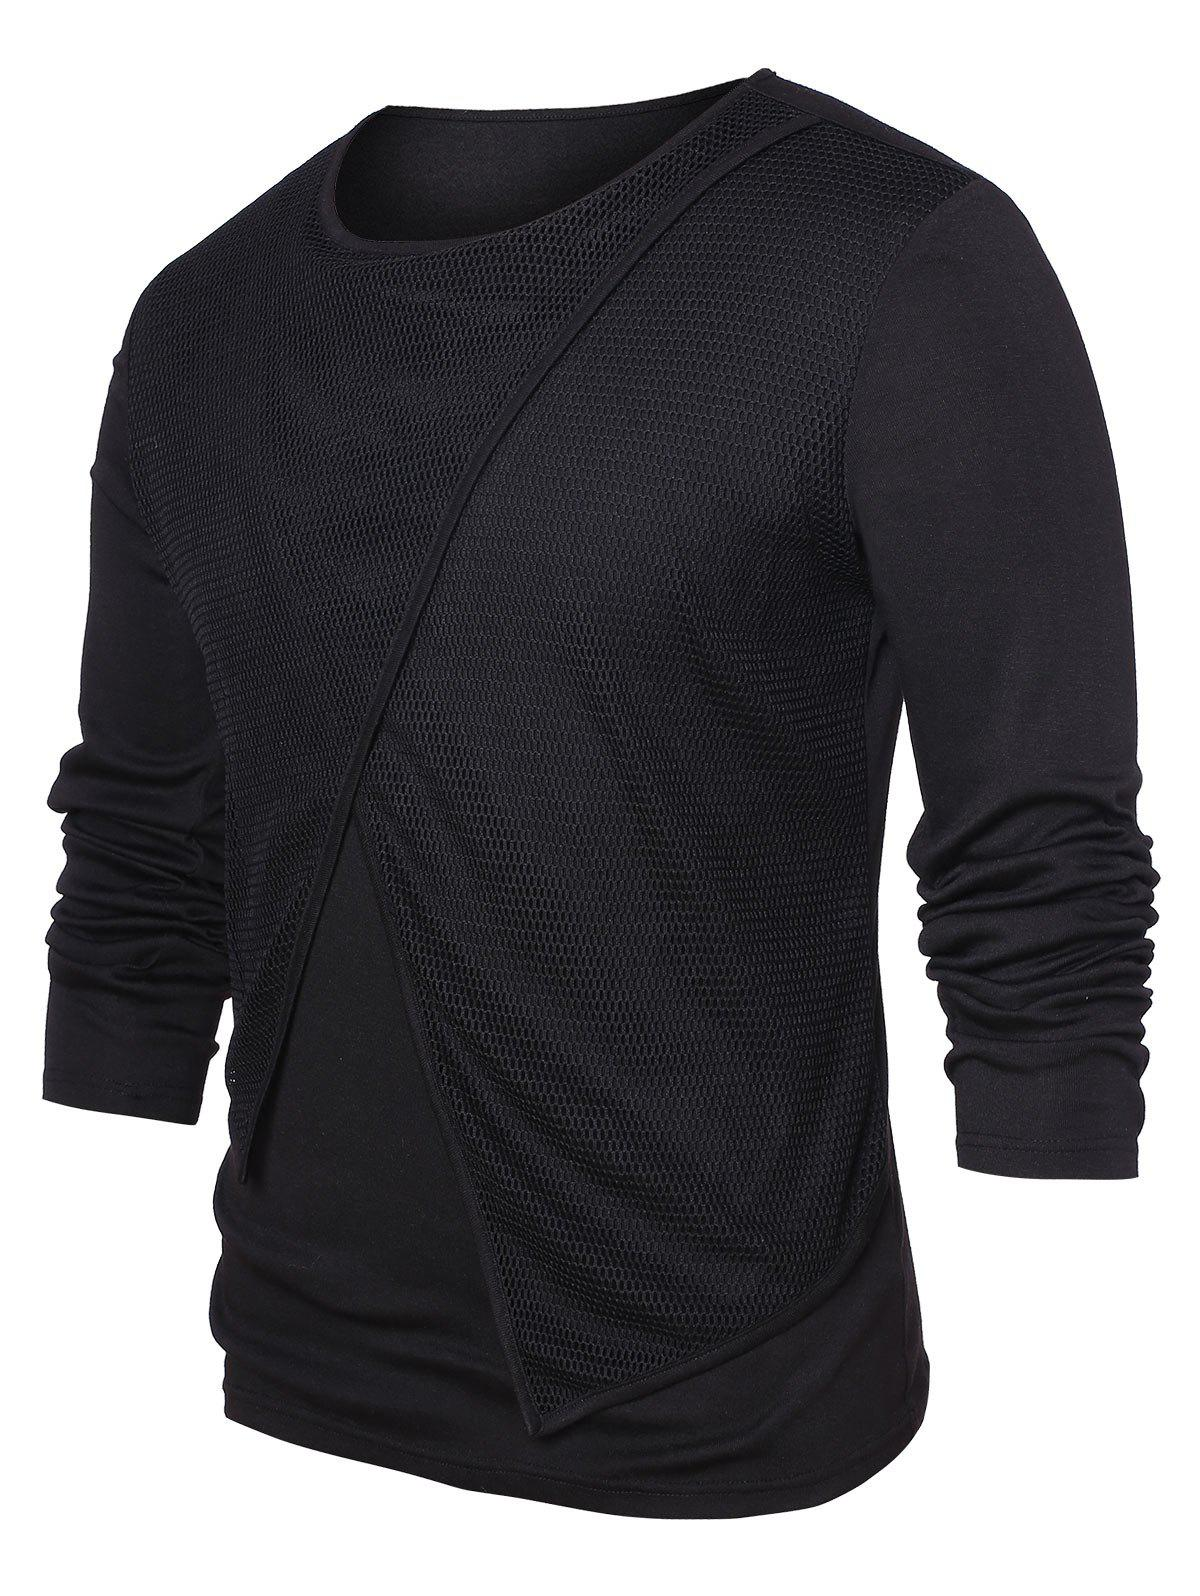 Mesh Panel Round Neck Top - BLACK XL